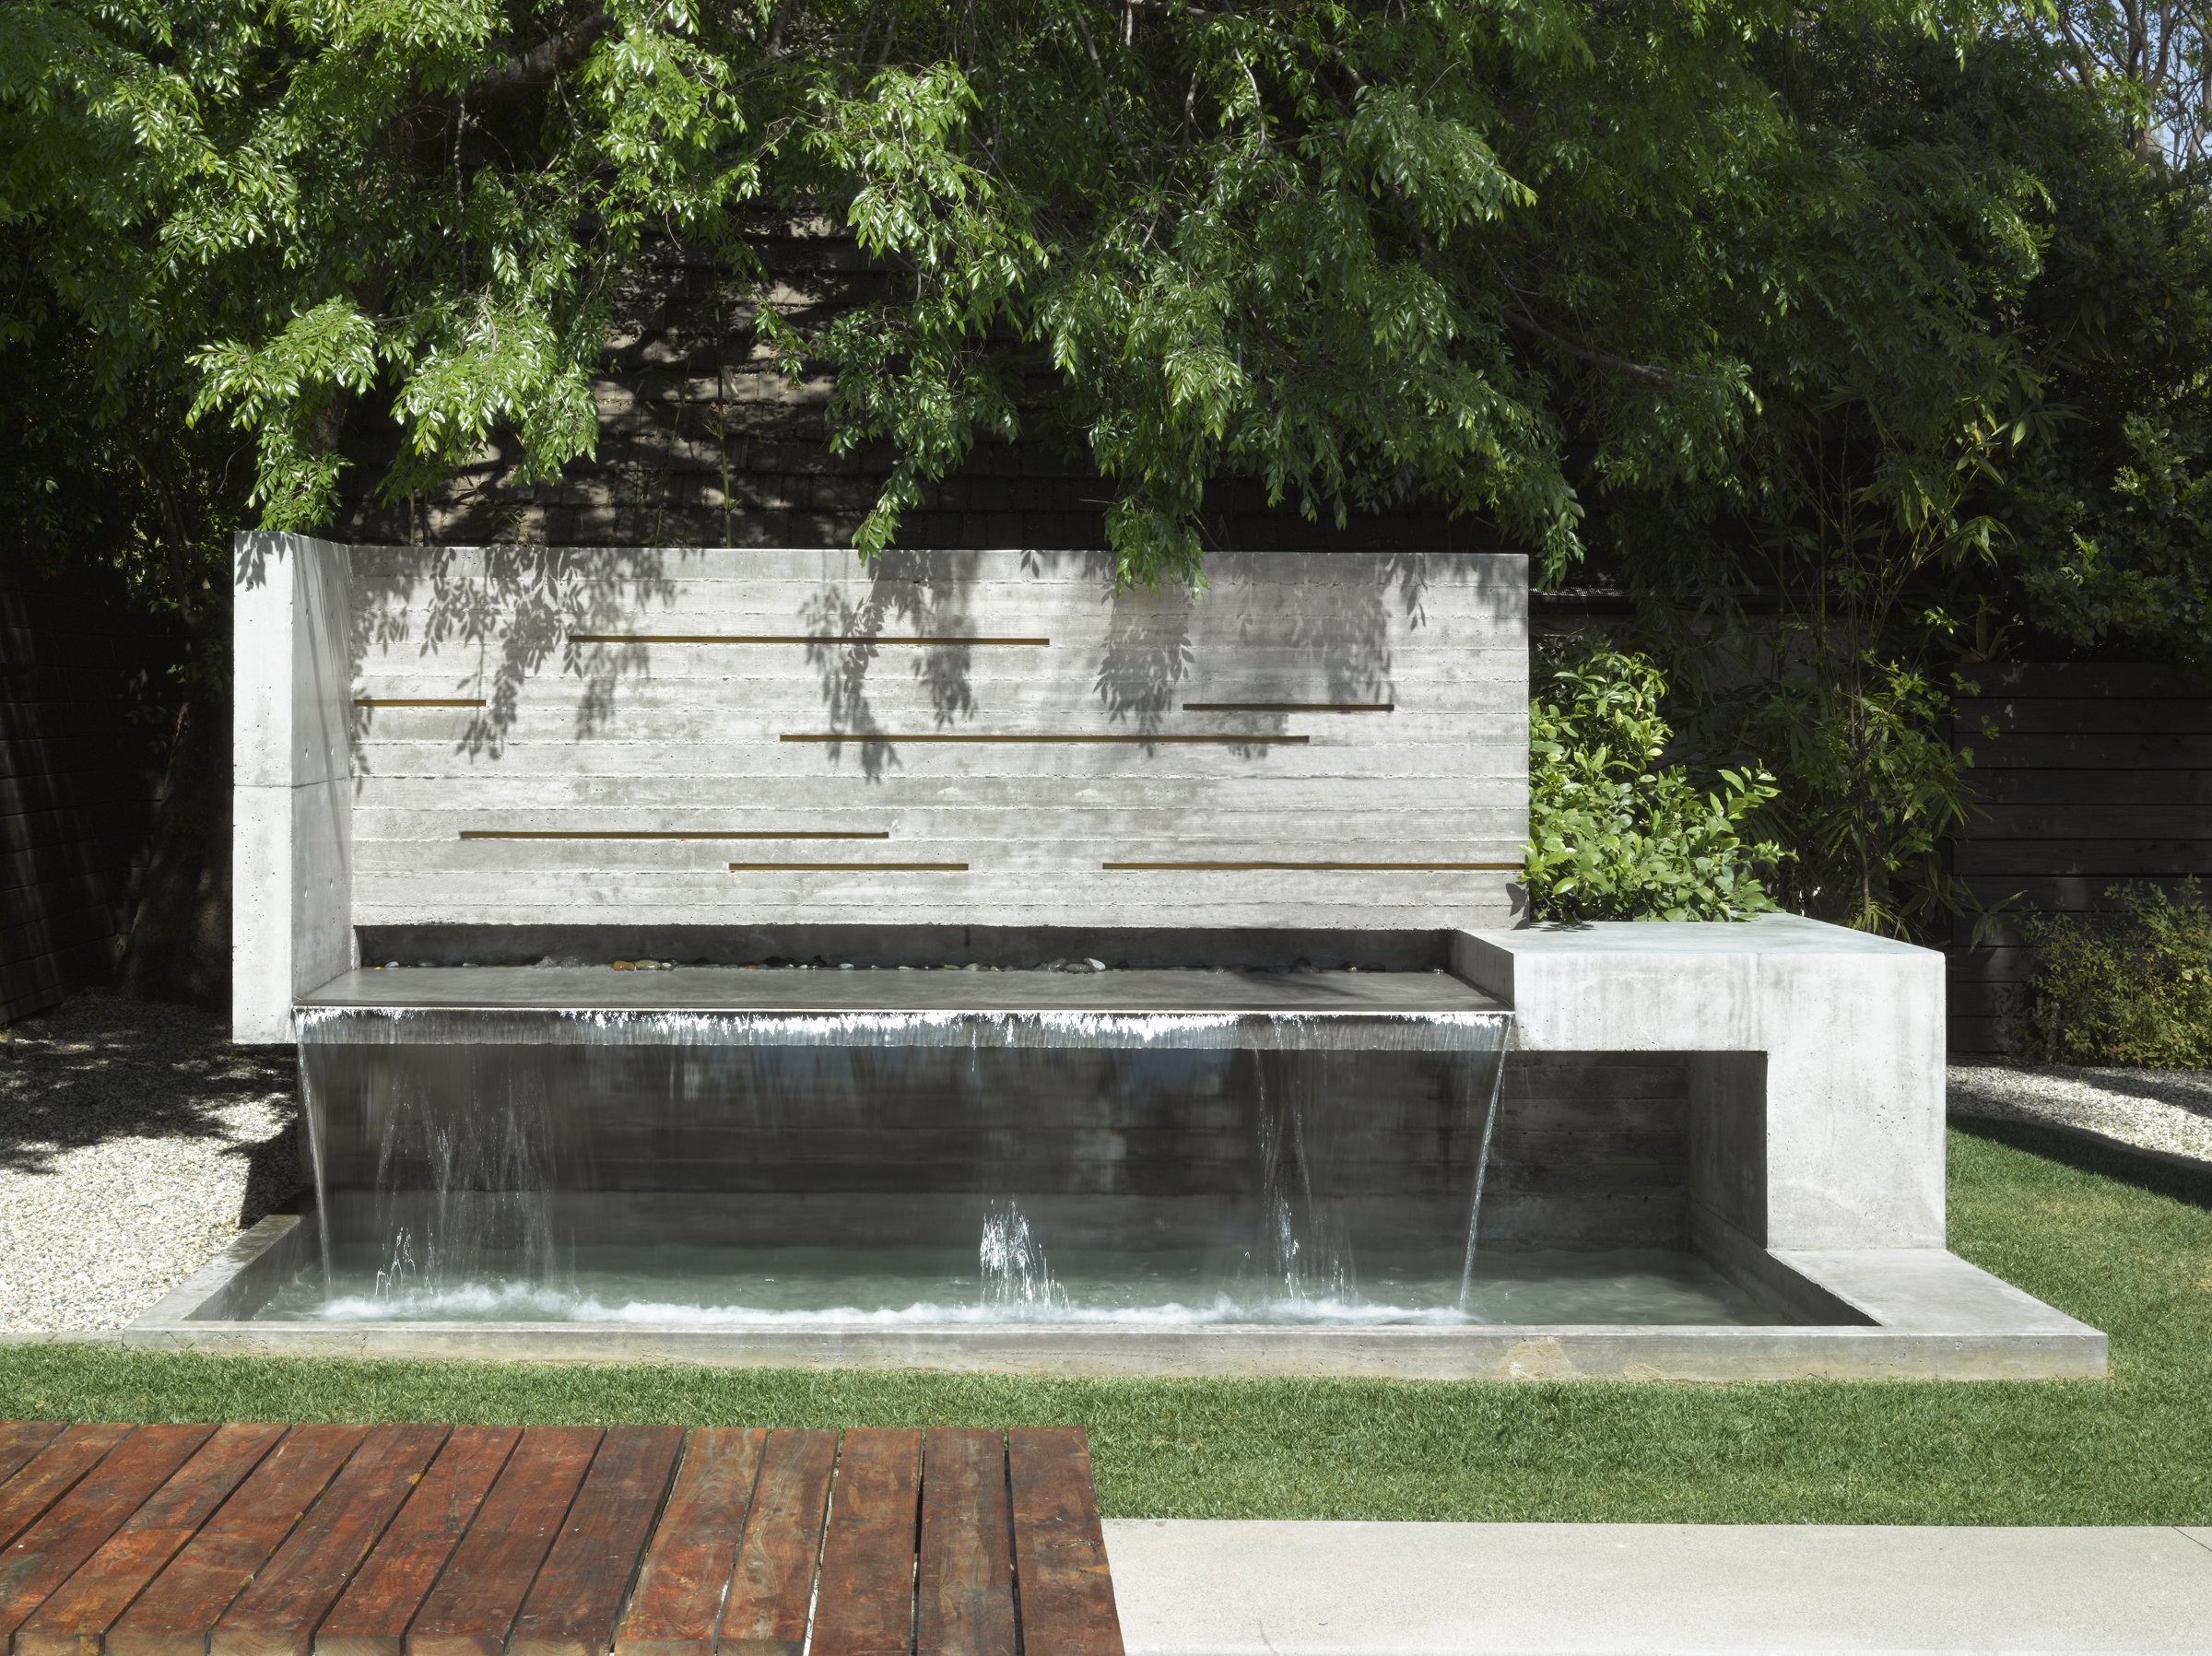 09 Fountain from front.jpg